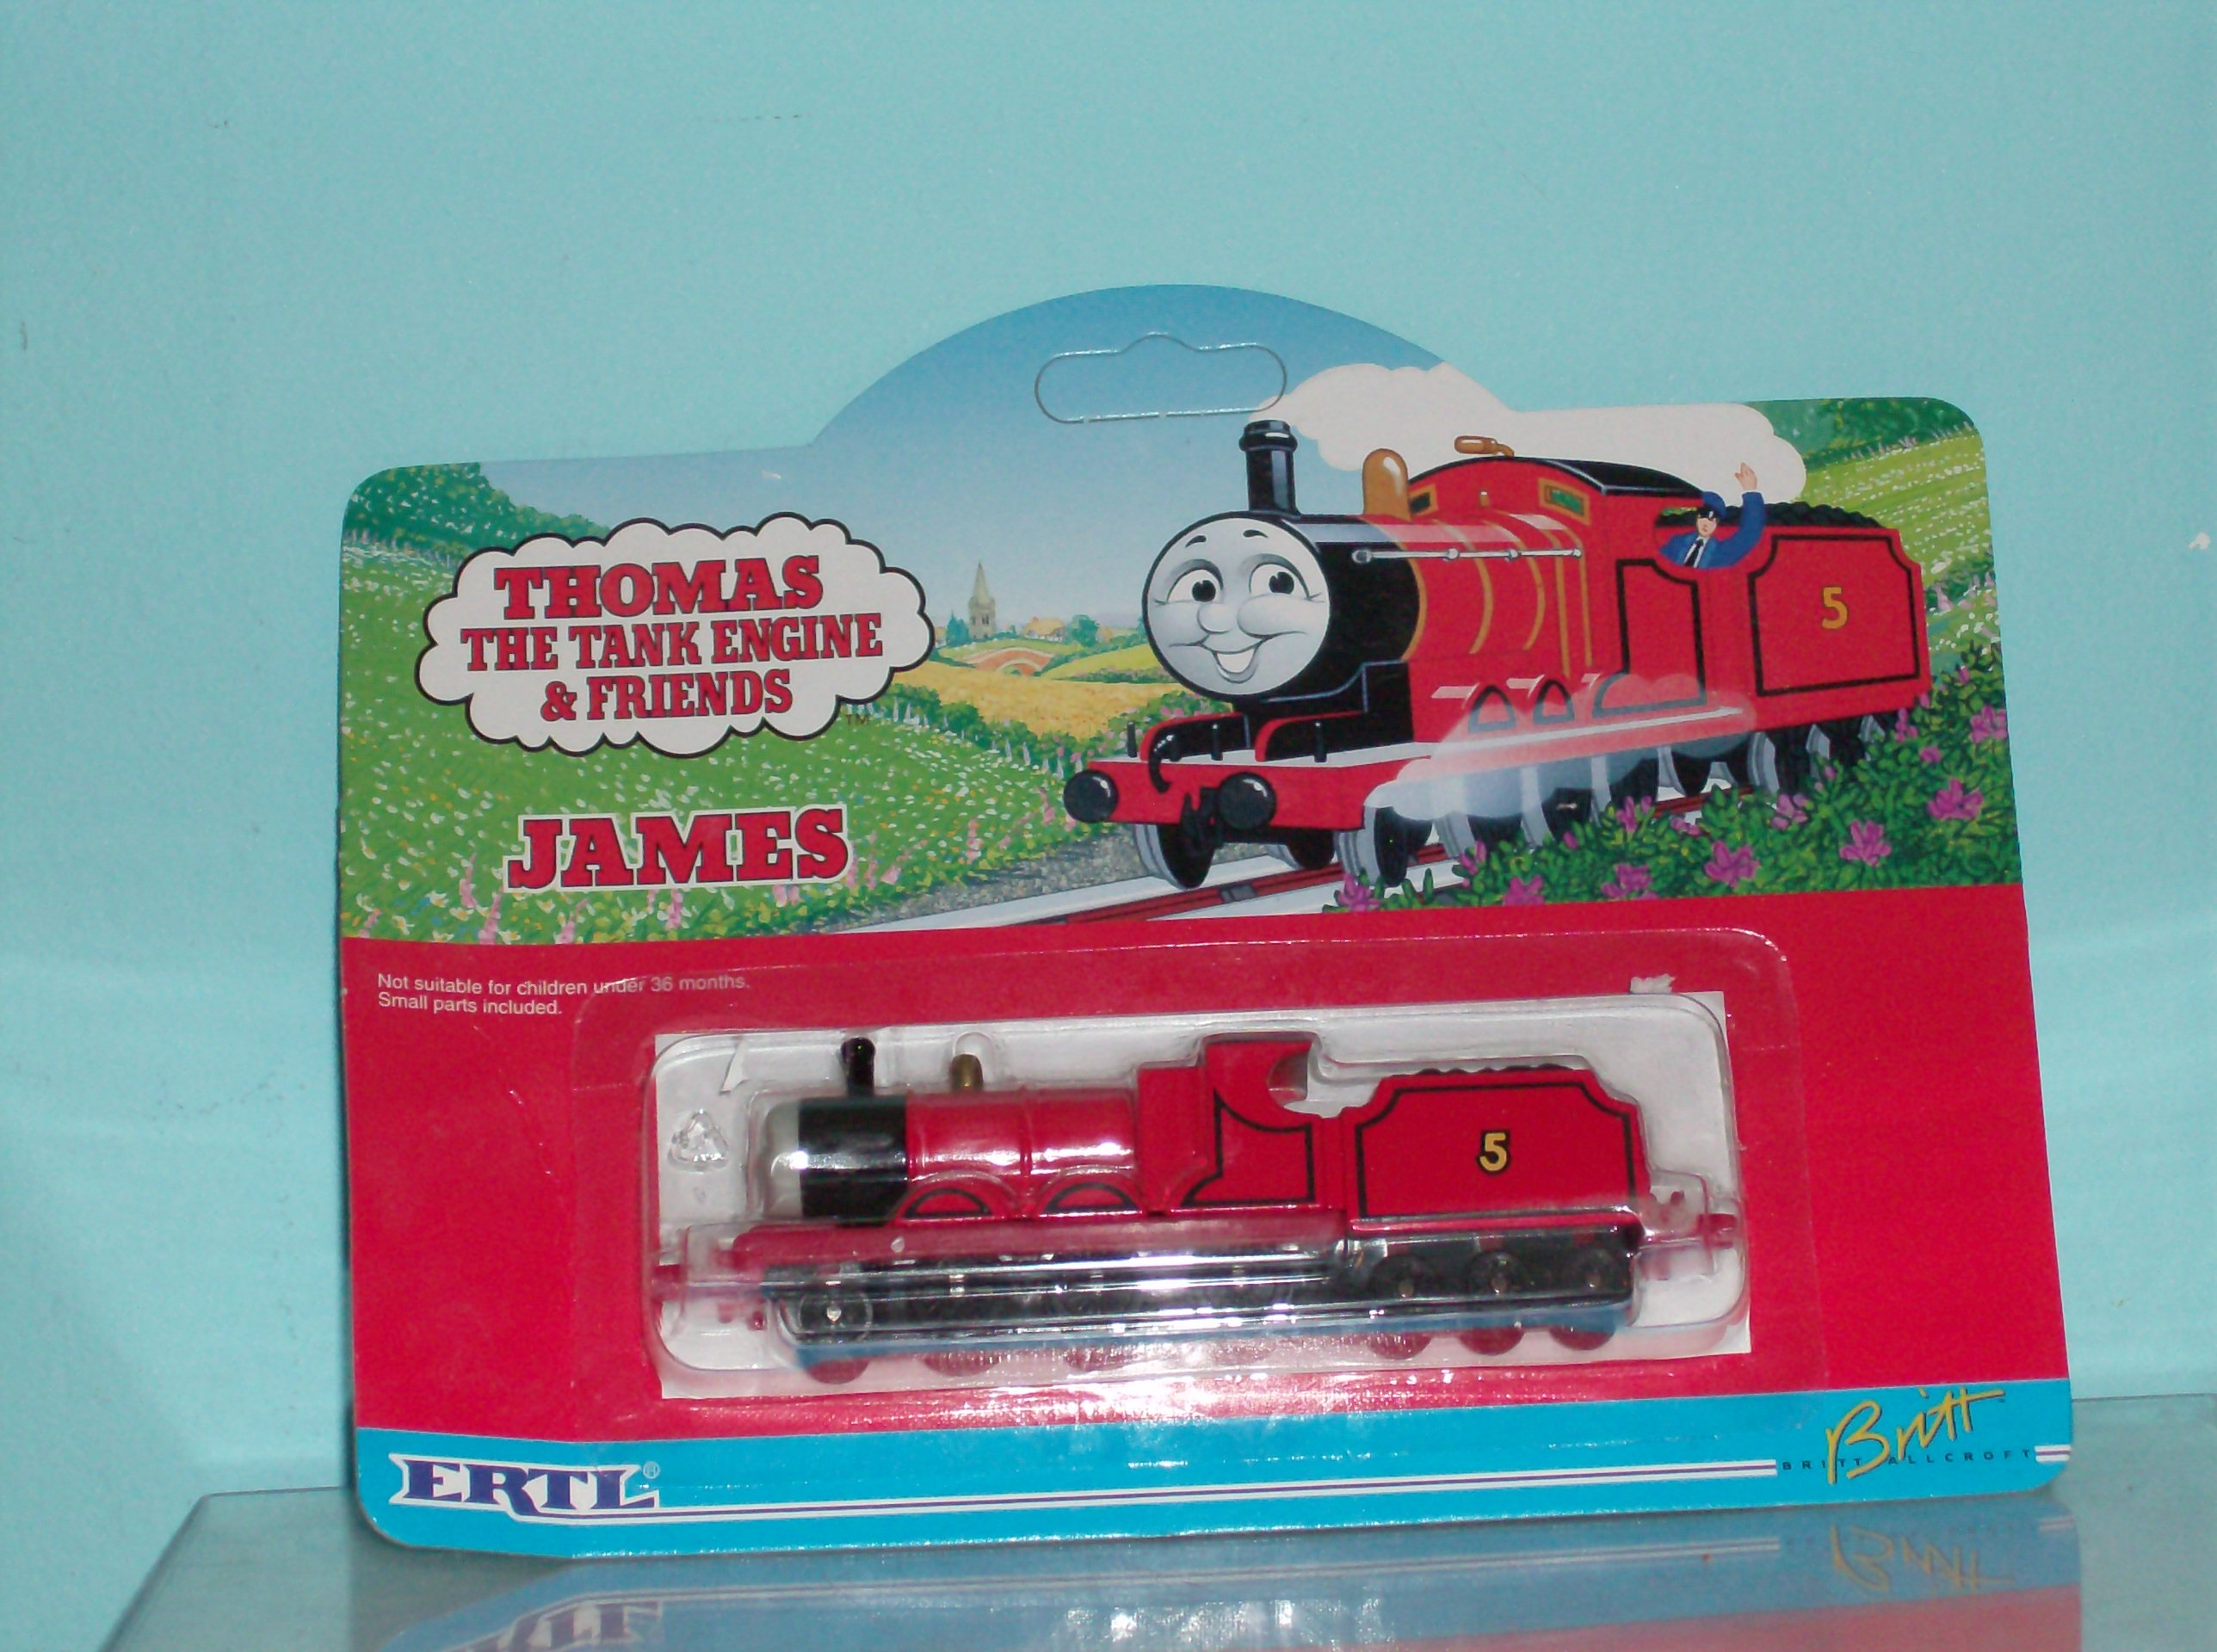 Ertl THOMAS Train James Retired NR (Toys-Trains-Thomas) at Plaza ...